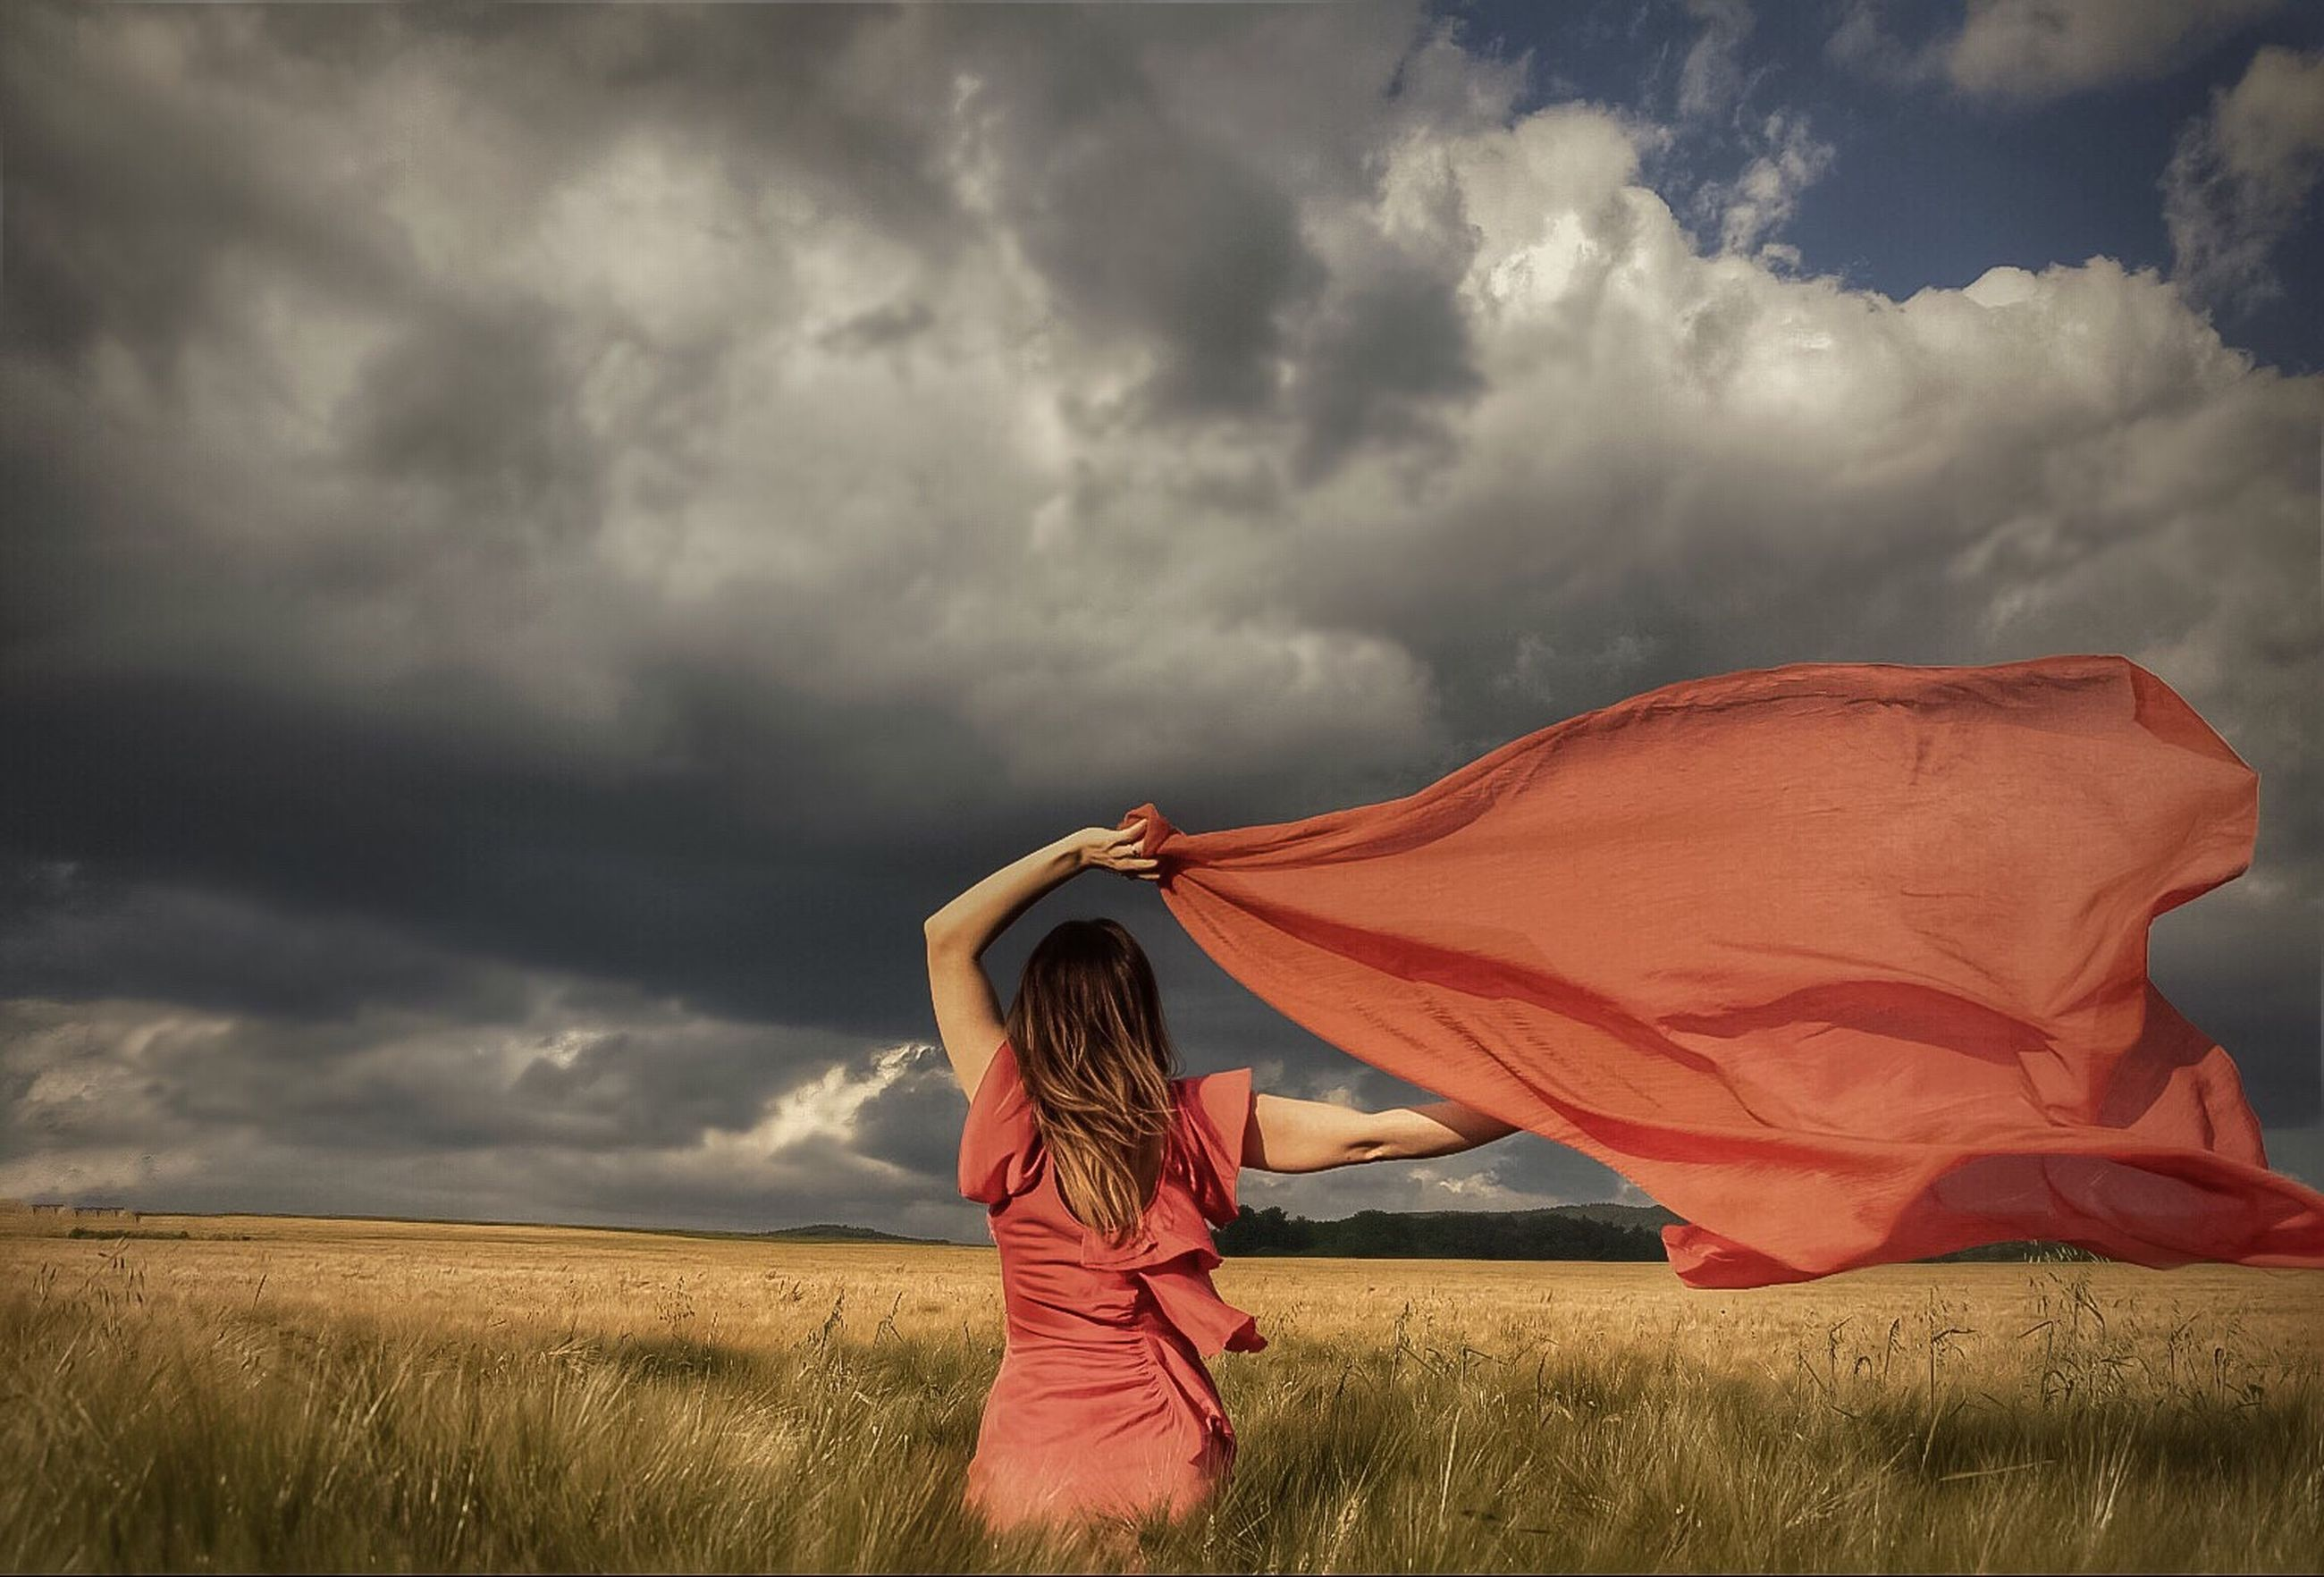 sky, cloud - sky, field, grass, cloudy, lifestyles, leisure activity, landscape, cloud, rear view, red, person, casual clothing, standing, tranquil scene, tranquility, relaxation, overcast